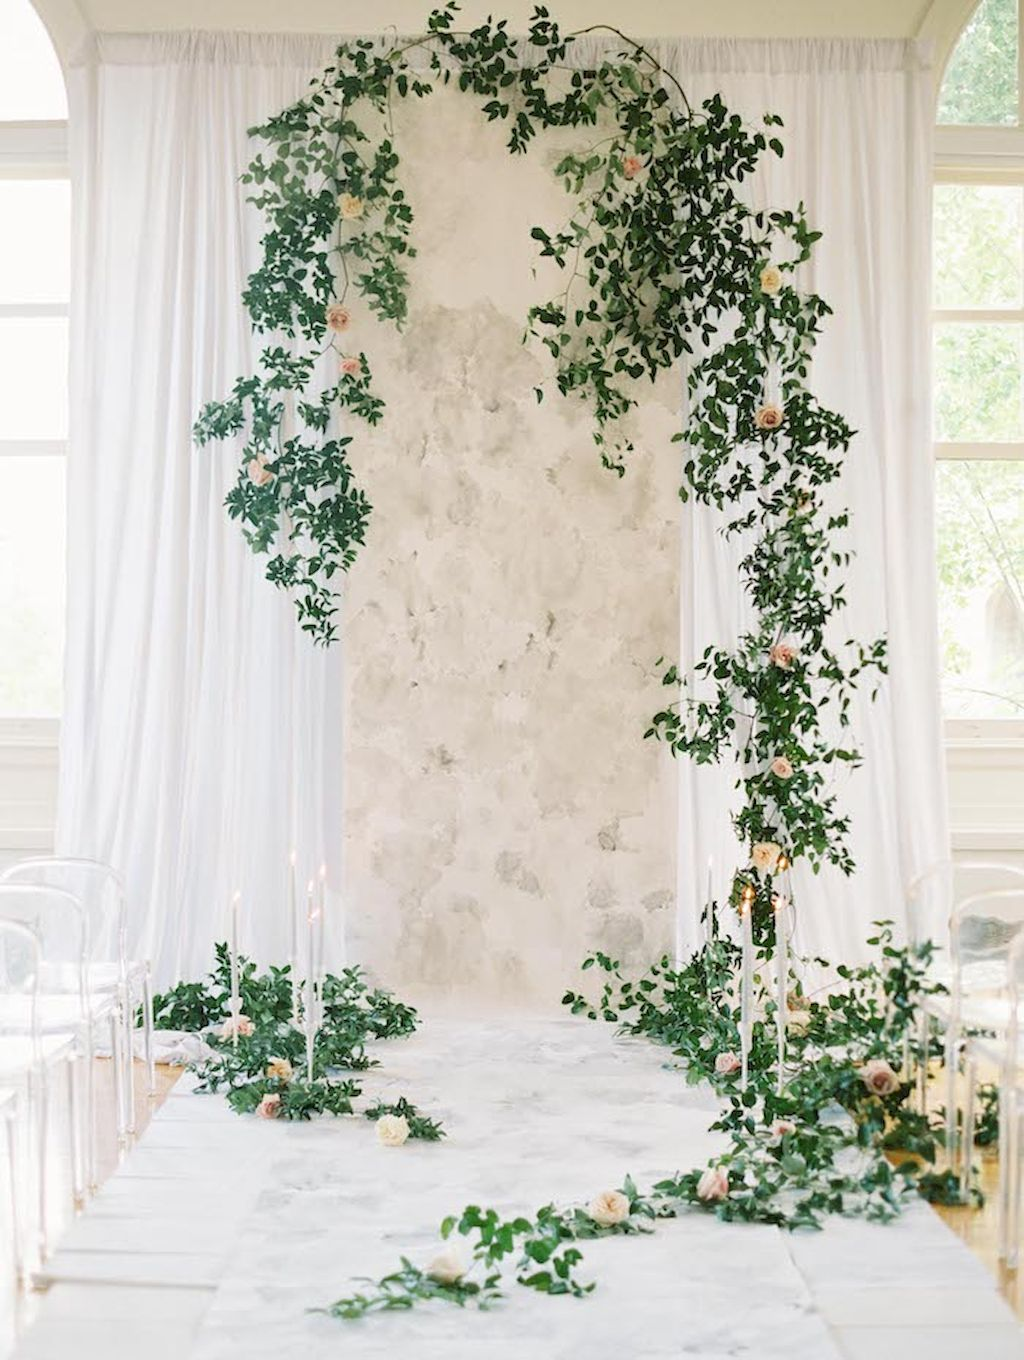 85+ Best Greenery Wedding Decor Ideas | Pinterest | Greenery ...